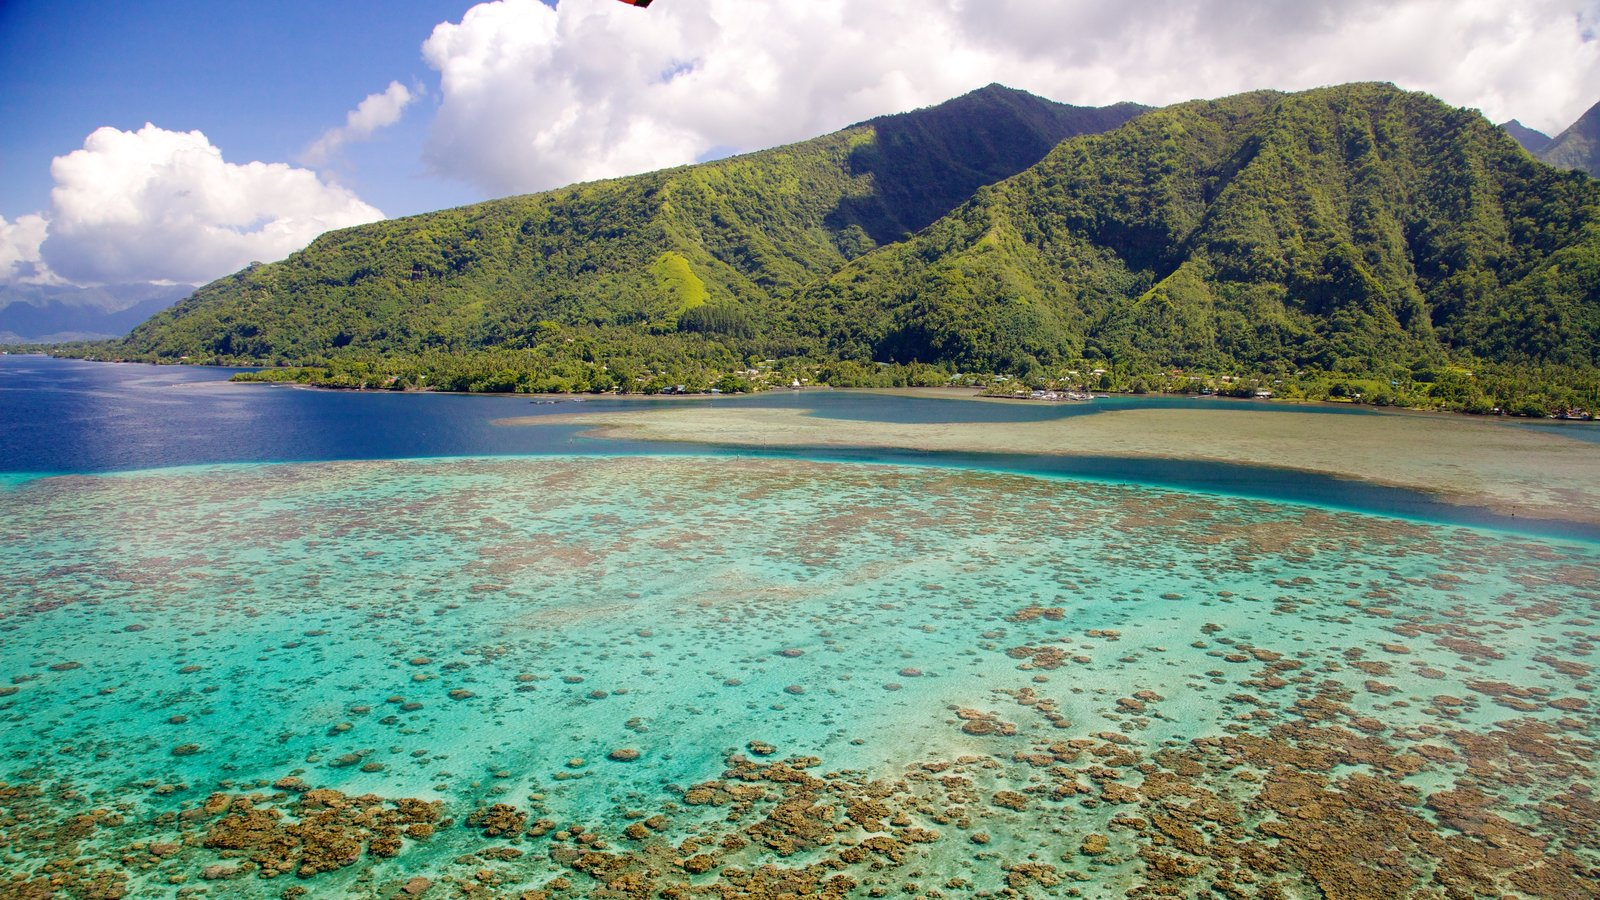 Tahiti which includes colorful reefs, general coastal views and mountains